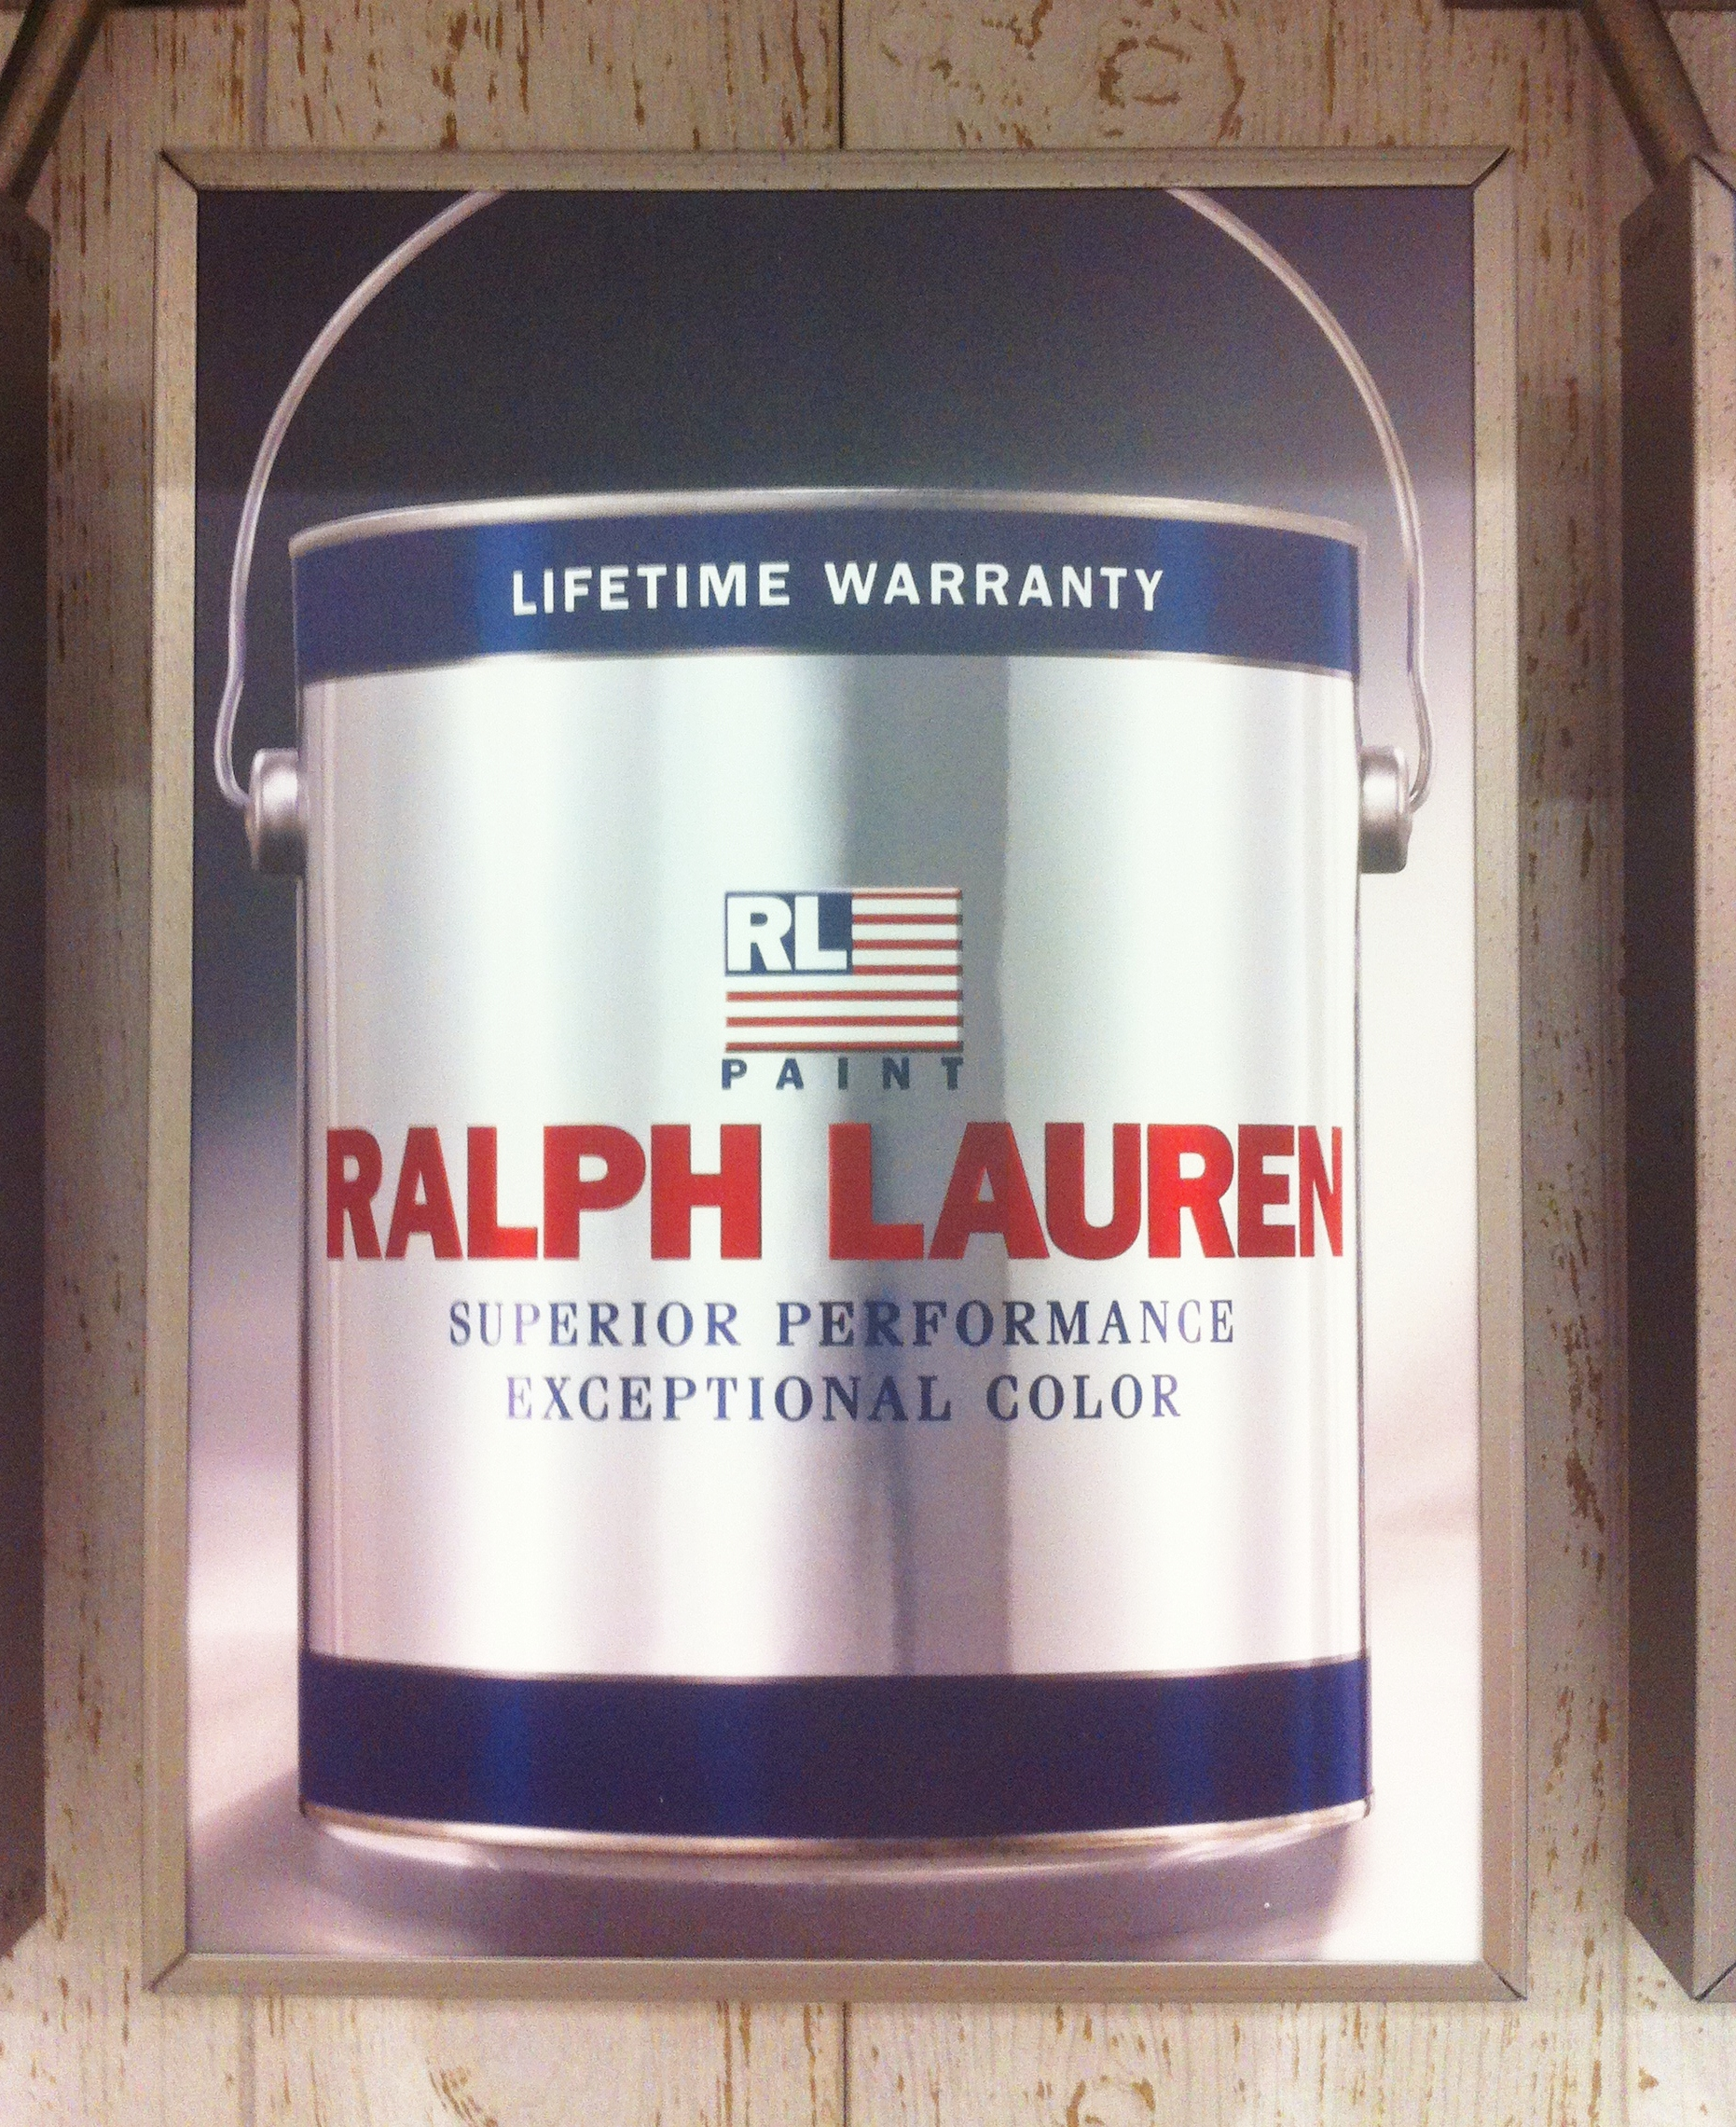 Home depot paint the cavender diary for Where to find ralph lauren paint